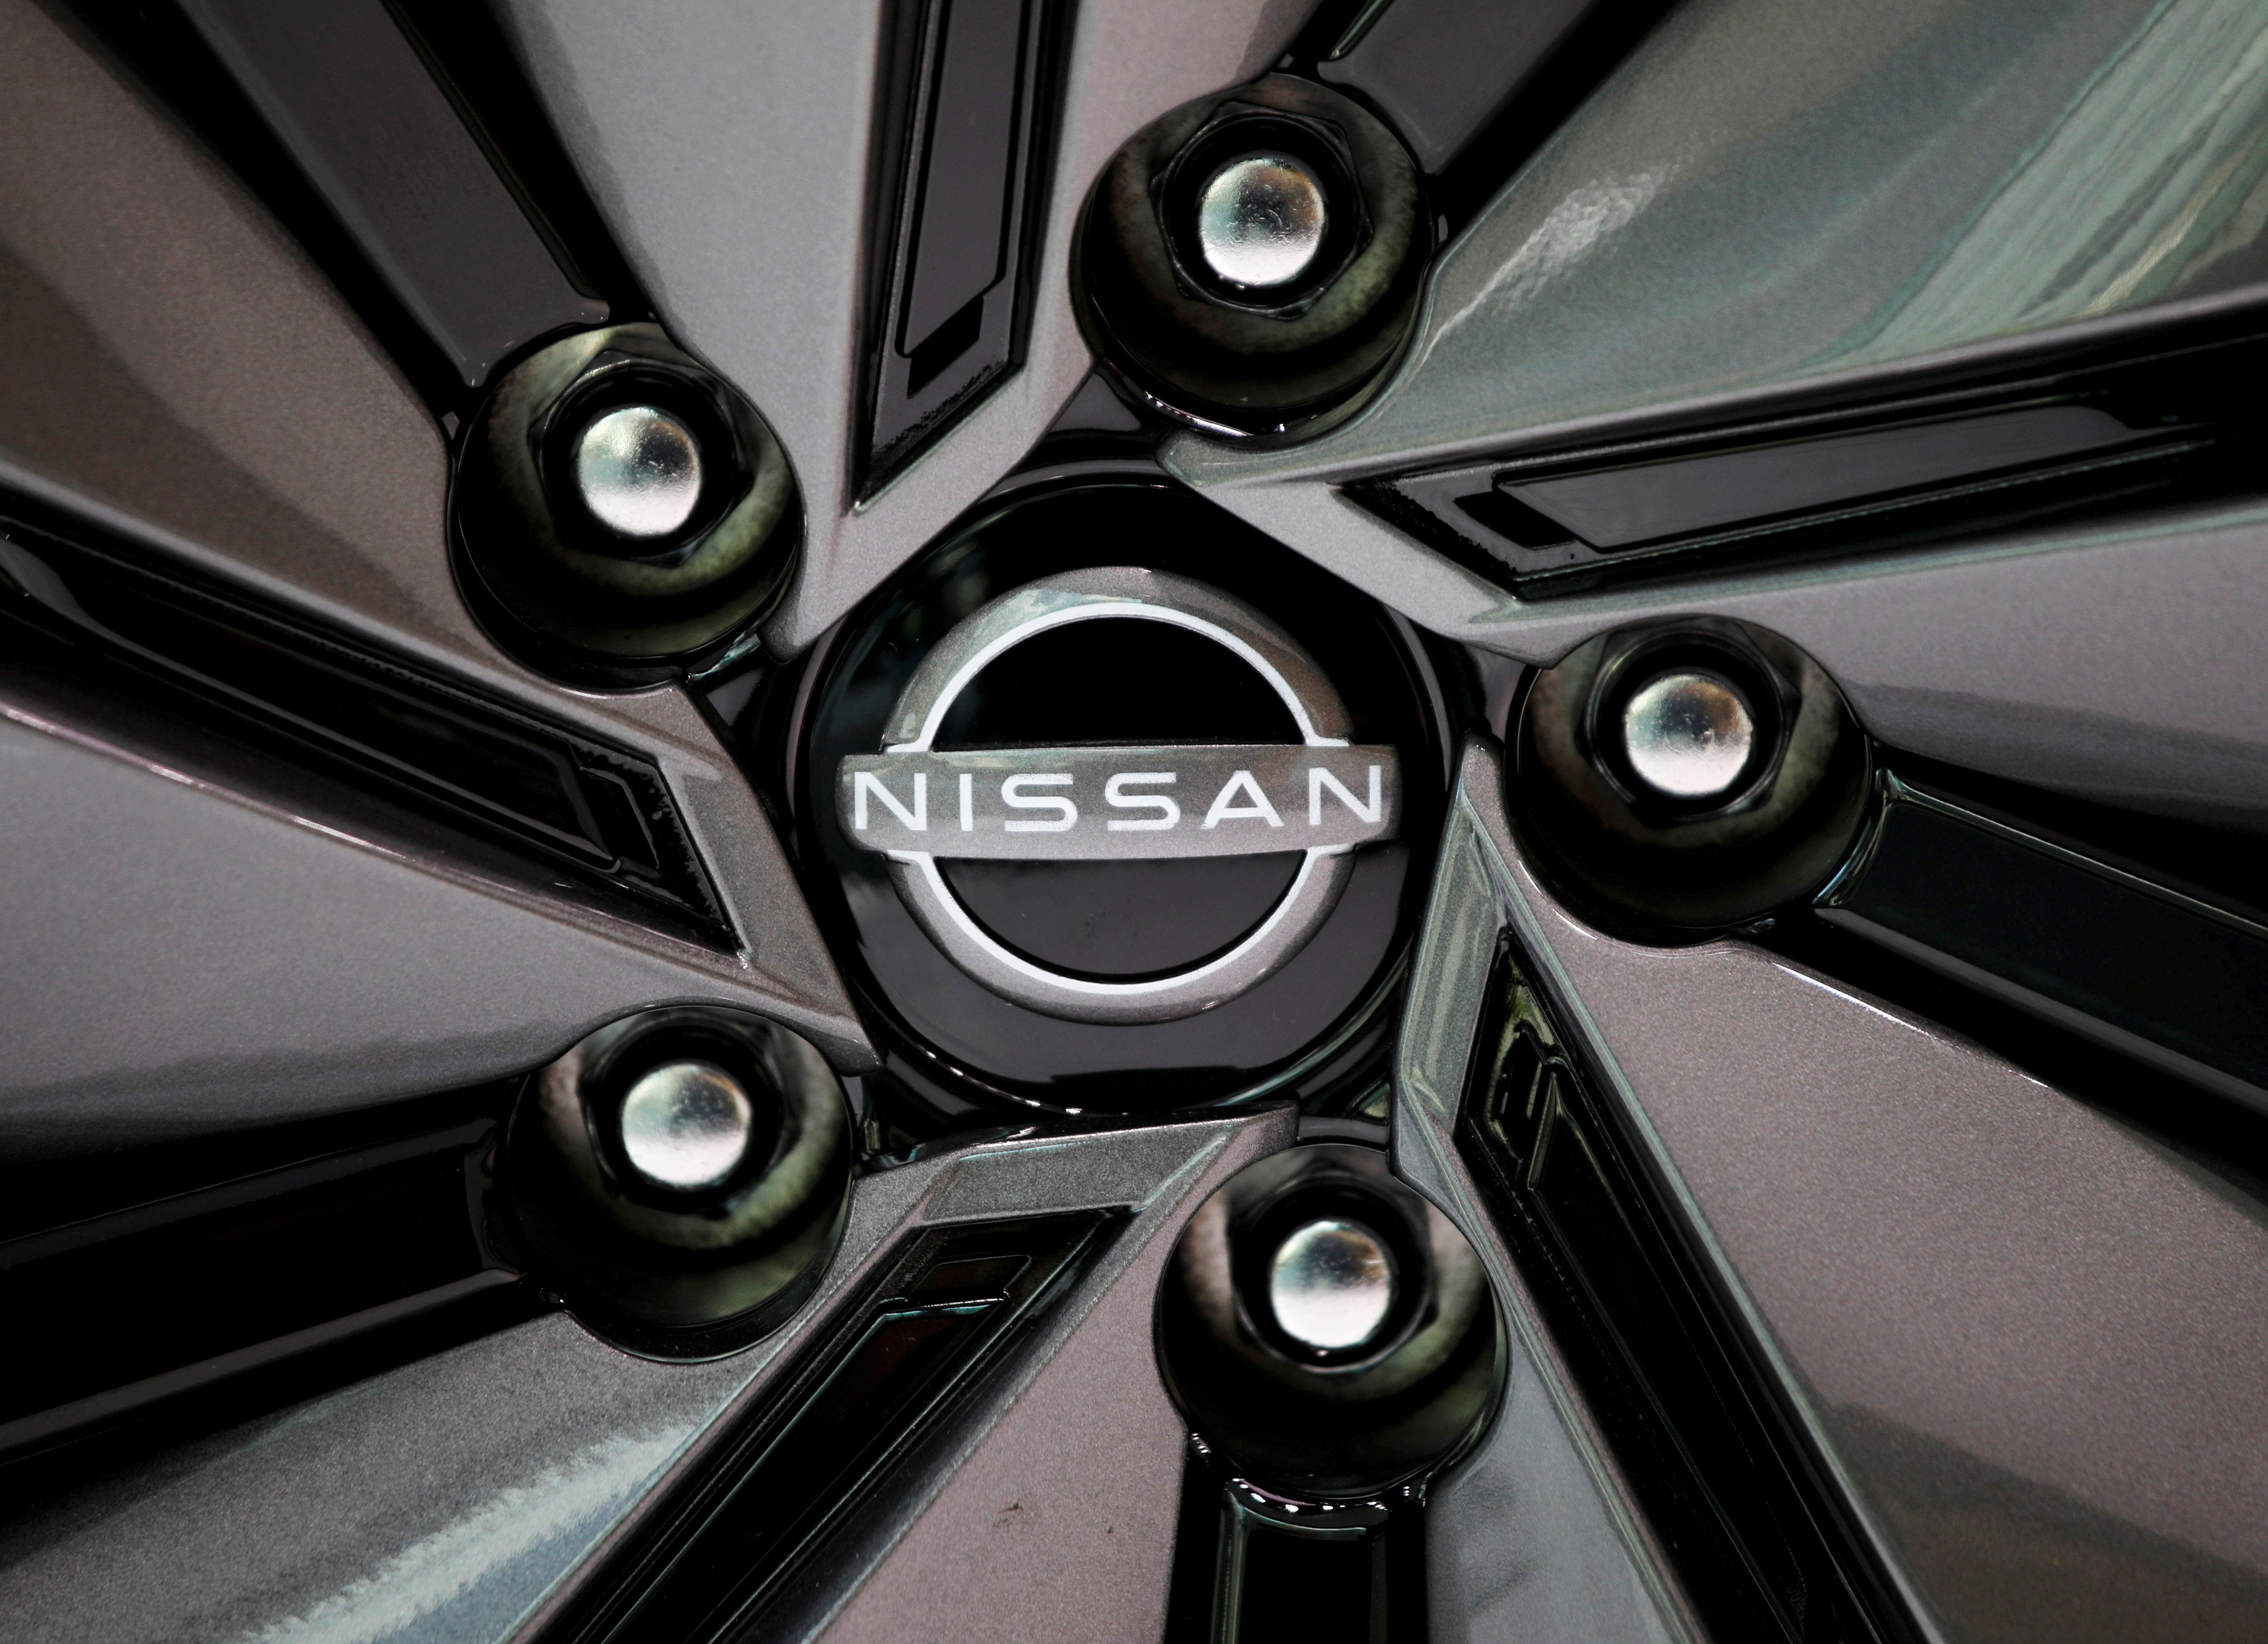 FILE PHOTO: The brand logo of Nissan Motor Corp. is seen on a tyre wheel of the company's car at their showroom in Tokyo, Japan November 11, 2020.  REUTERS/Issei Kato